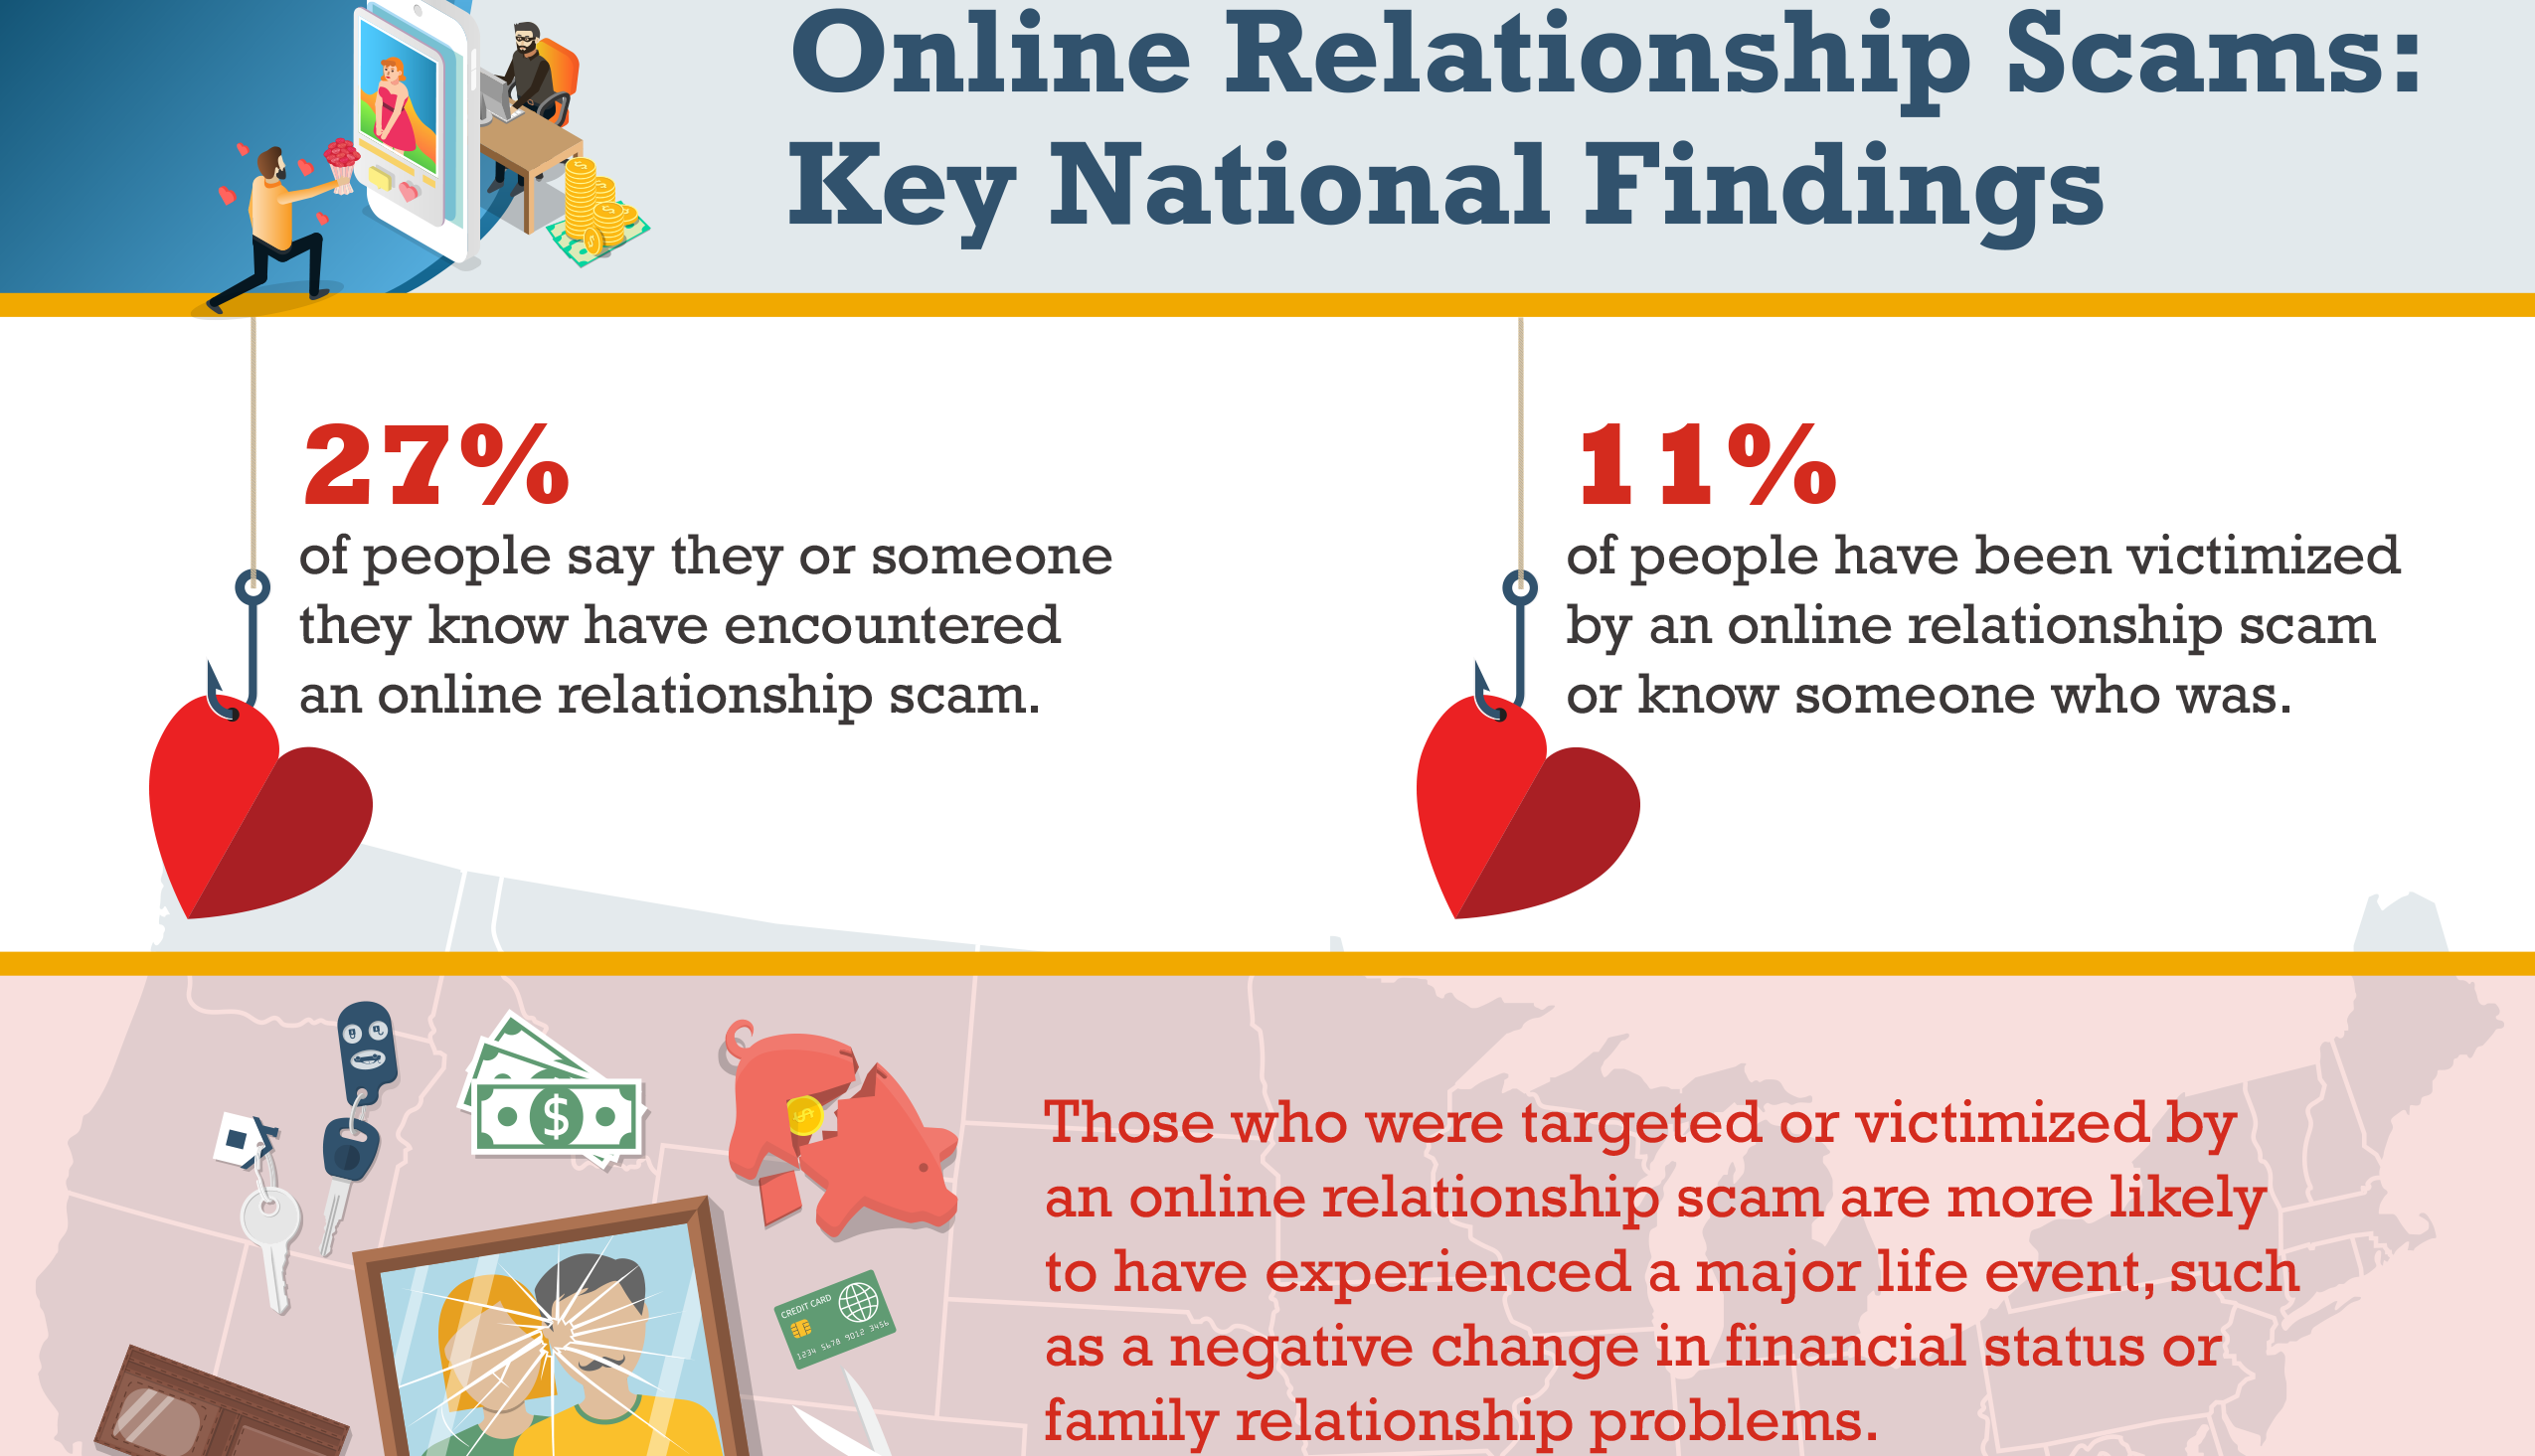 Online Relationship Scams: Key National Findings: Infographic